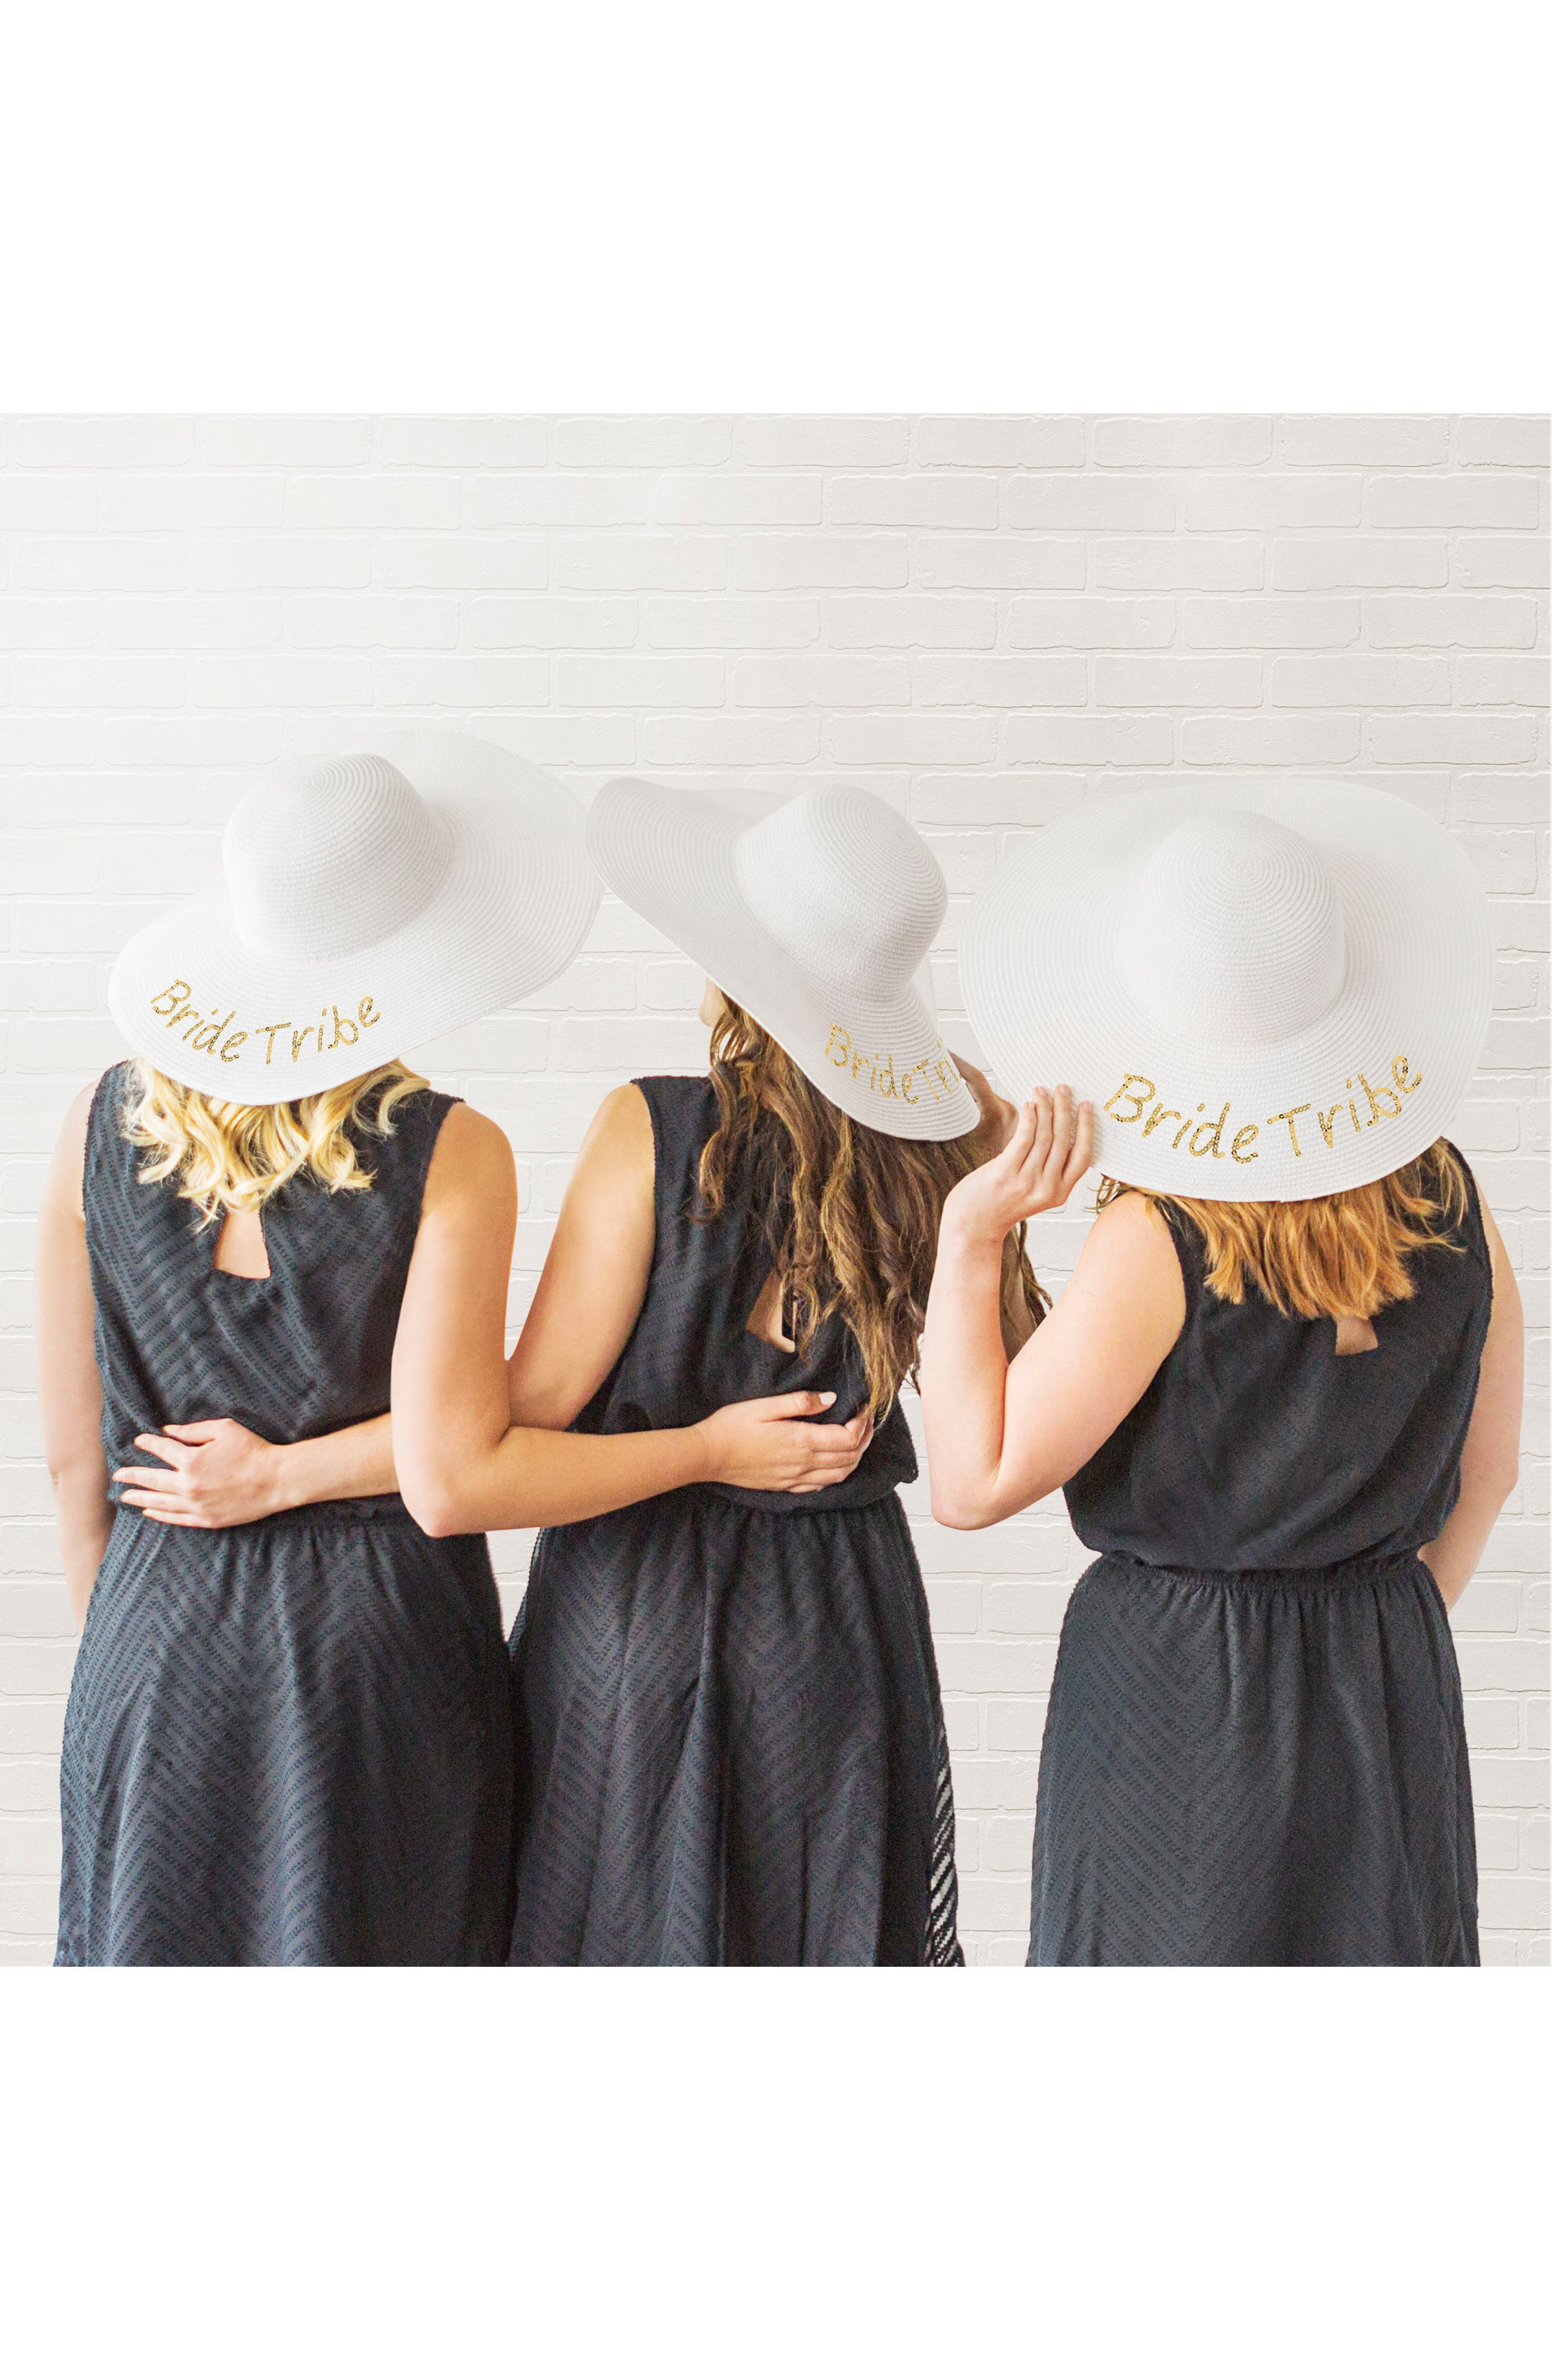 Sequin Bride Tribe Straw Hat,                             Alternate thumbnail 7, color,